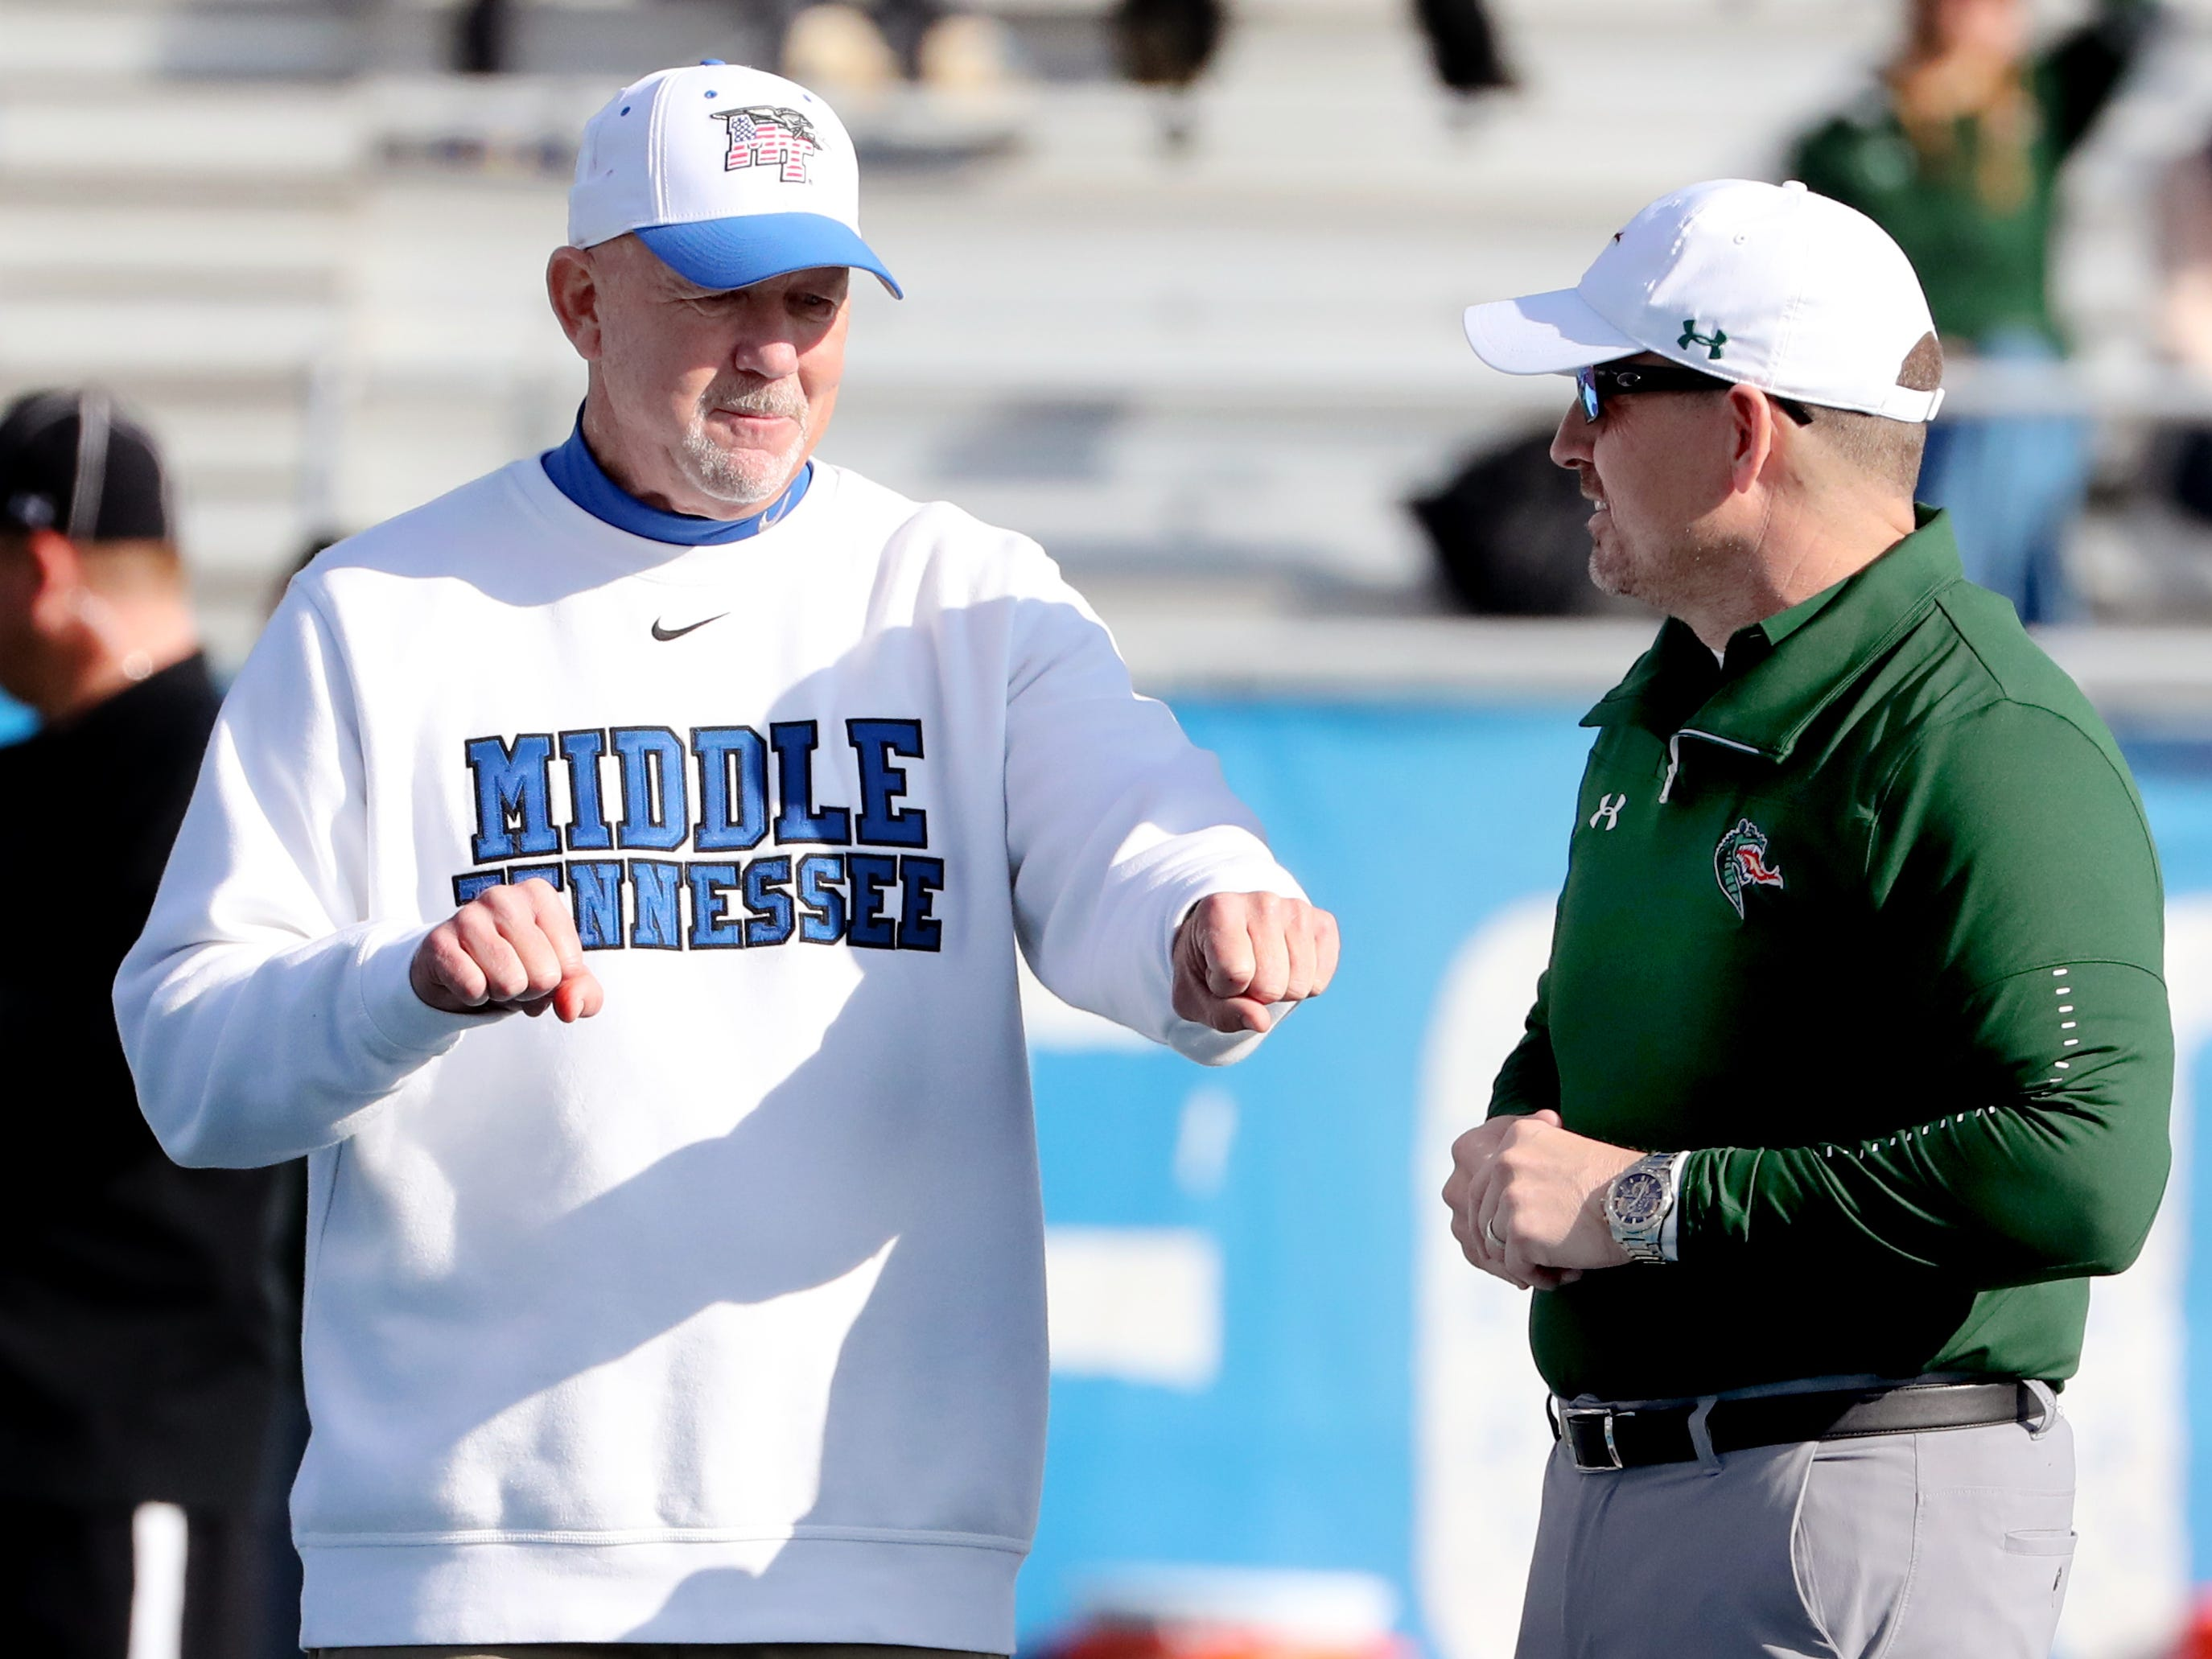 MTSU's head coach Rick Stockstill talks with UAB's head coach Bill Clark before the game at MTSU on Saturday, Nov. 24, 2018.